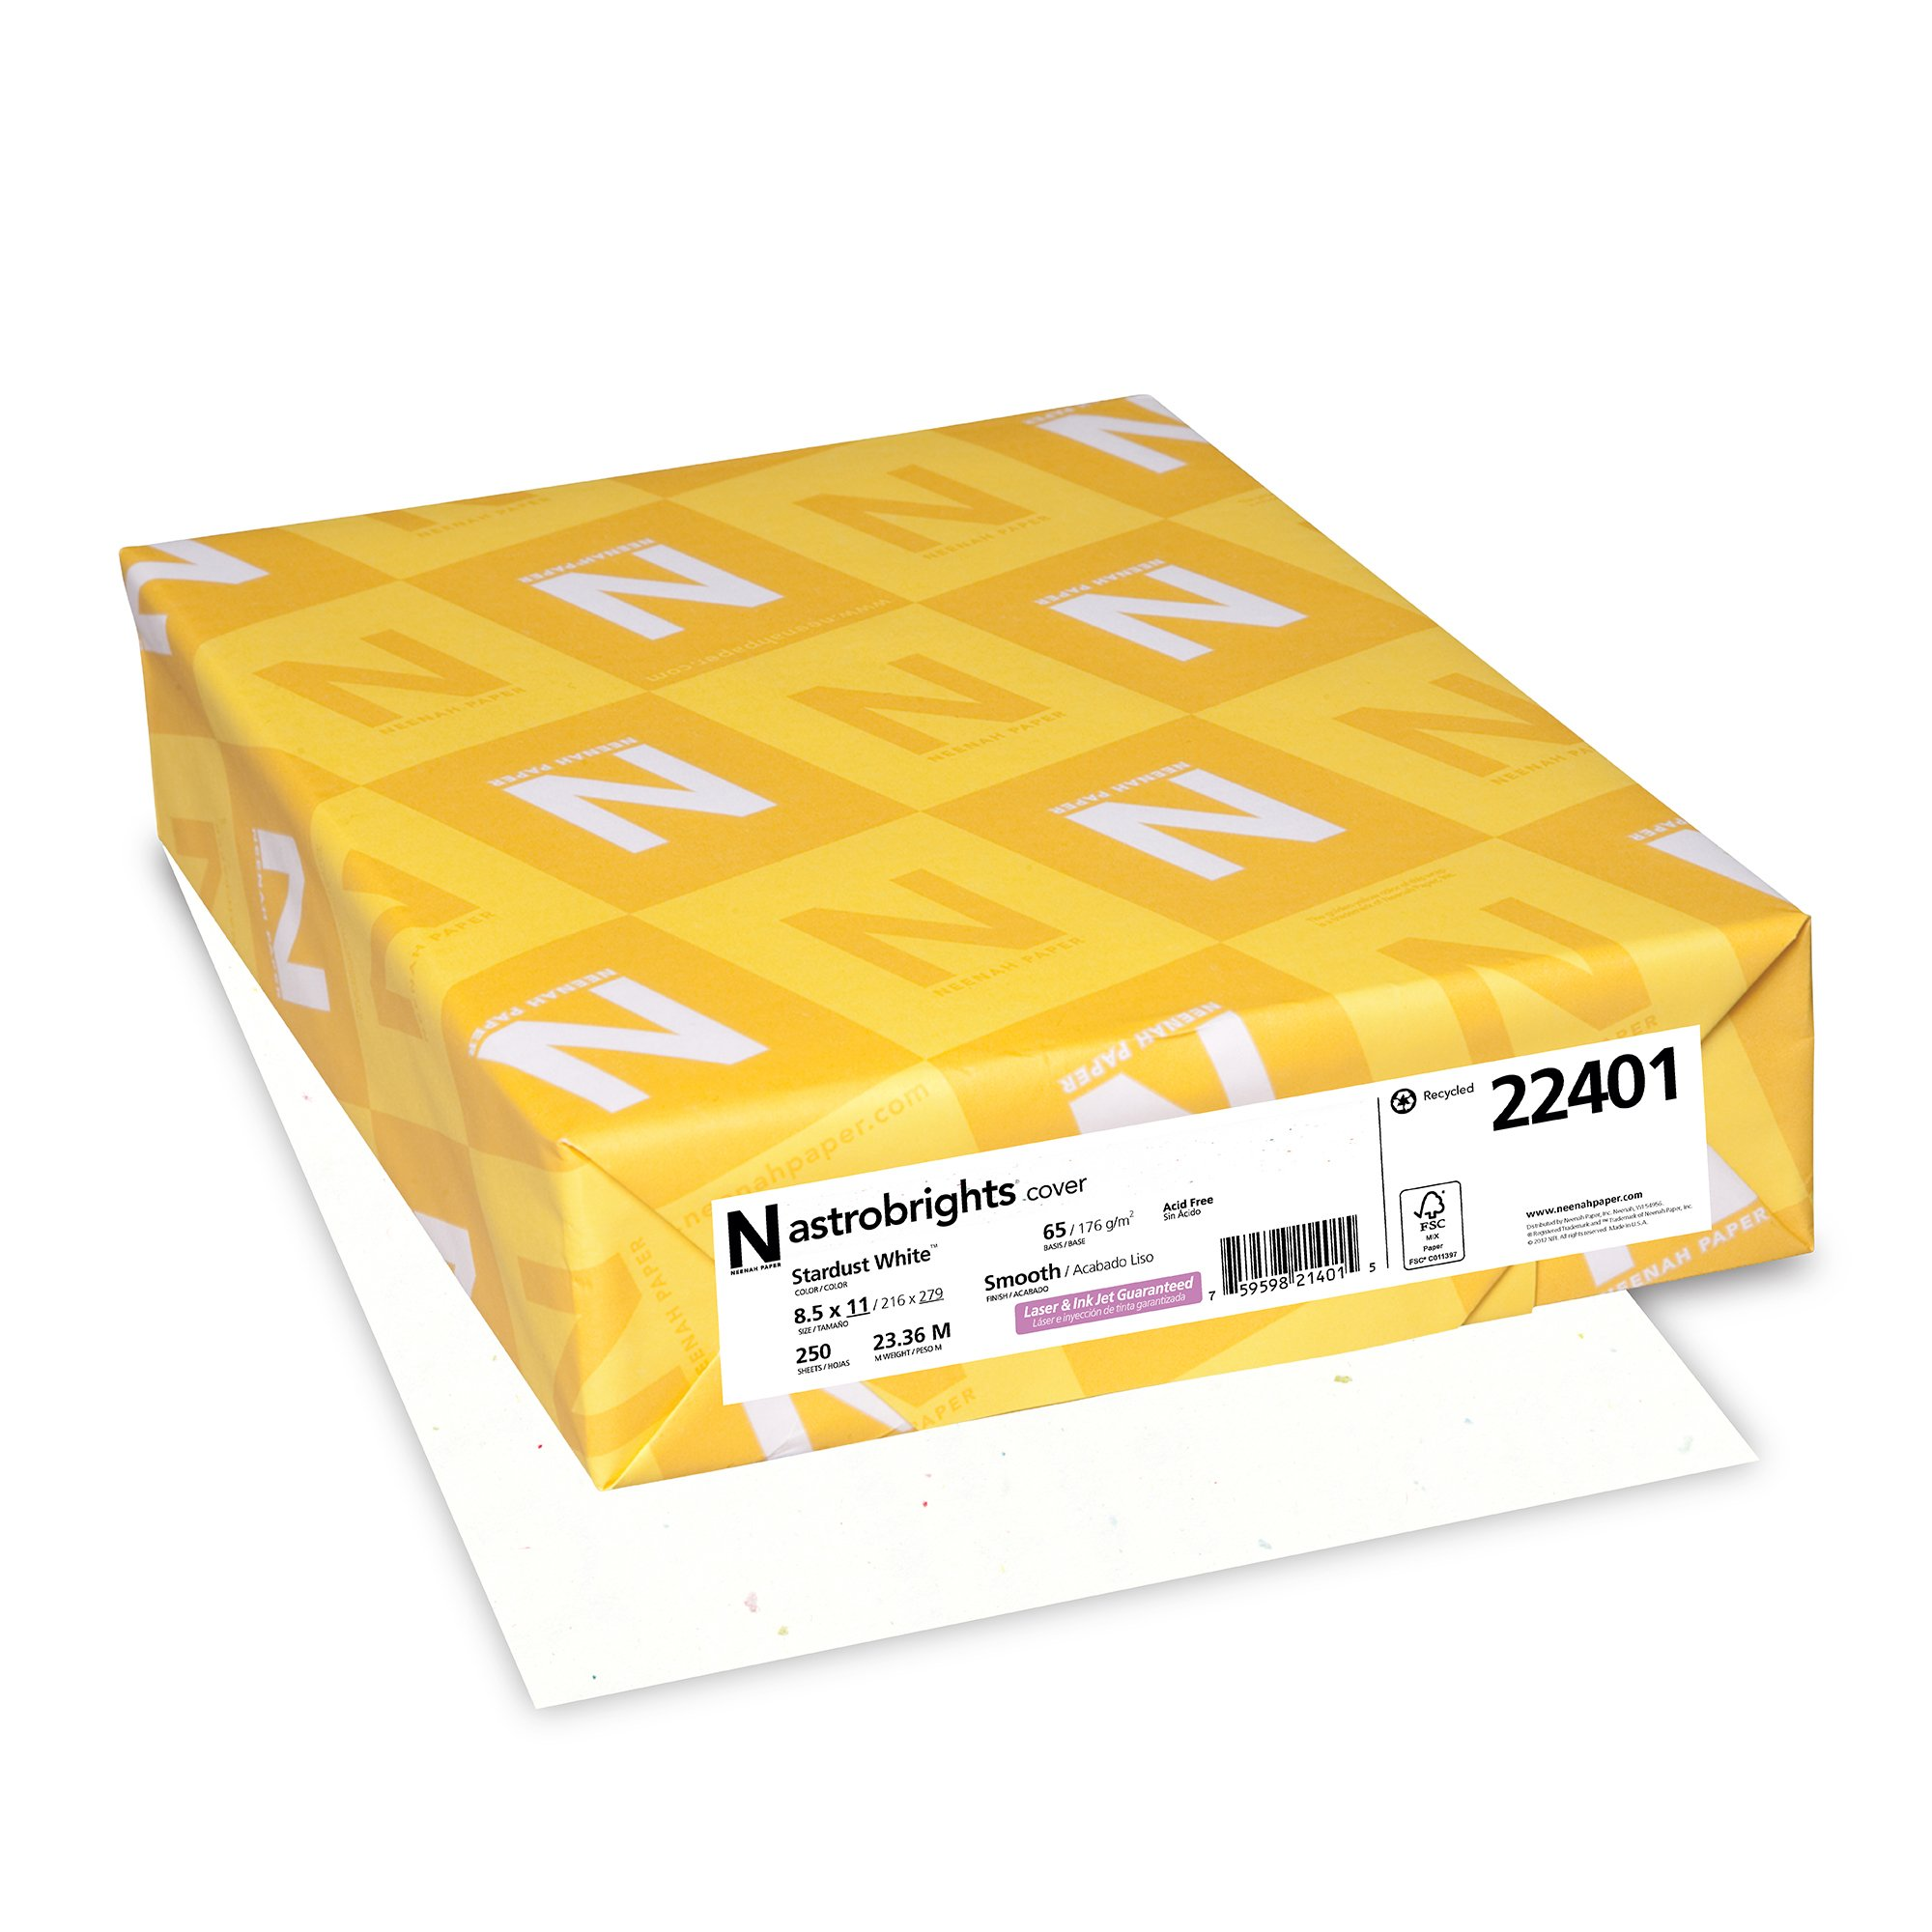 Neenah Paper Astrobrights Colored Cardstock, 8.5'' x 11'', 65 lb / 176 gsm, Stardust White, 250 Sheets (22401)